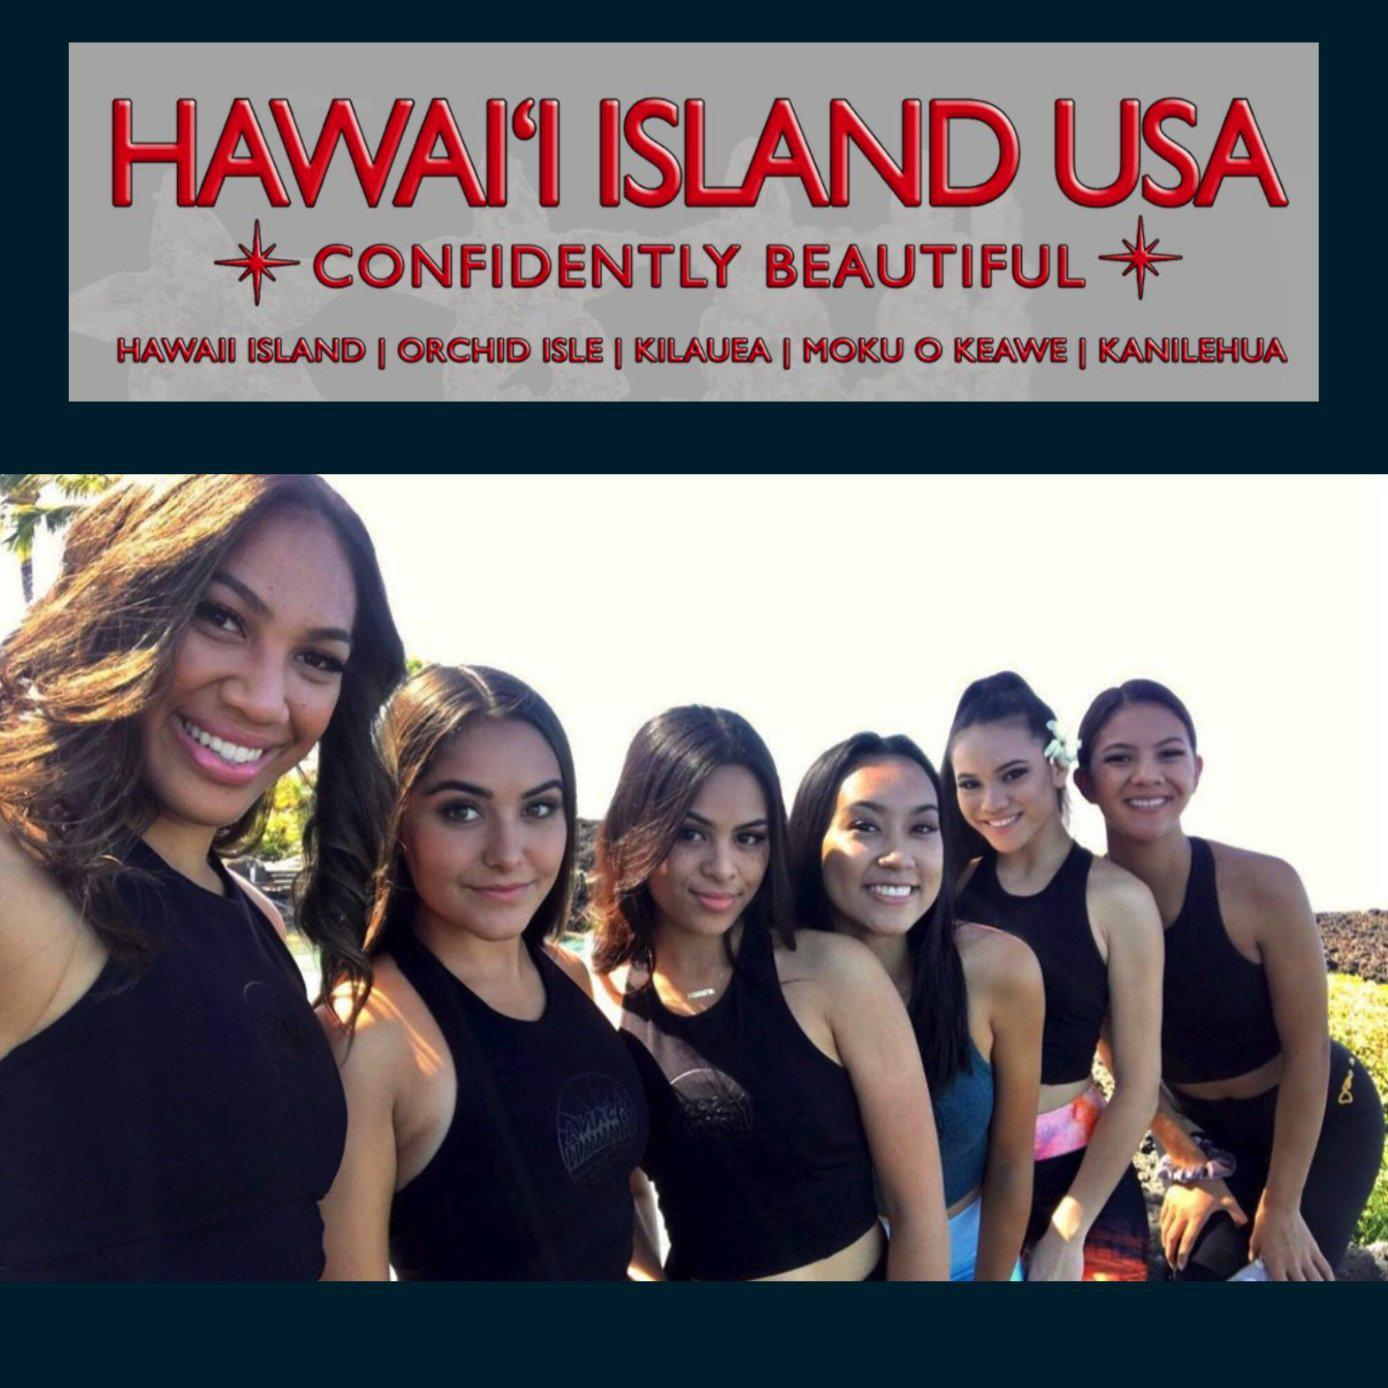 Miss Hawaii Island USA 2020 Contestants wearing Asana Hawaii